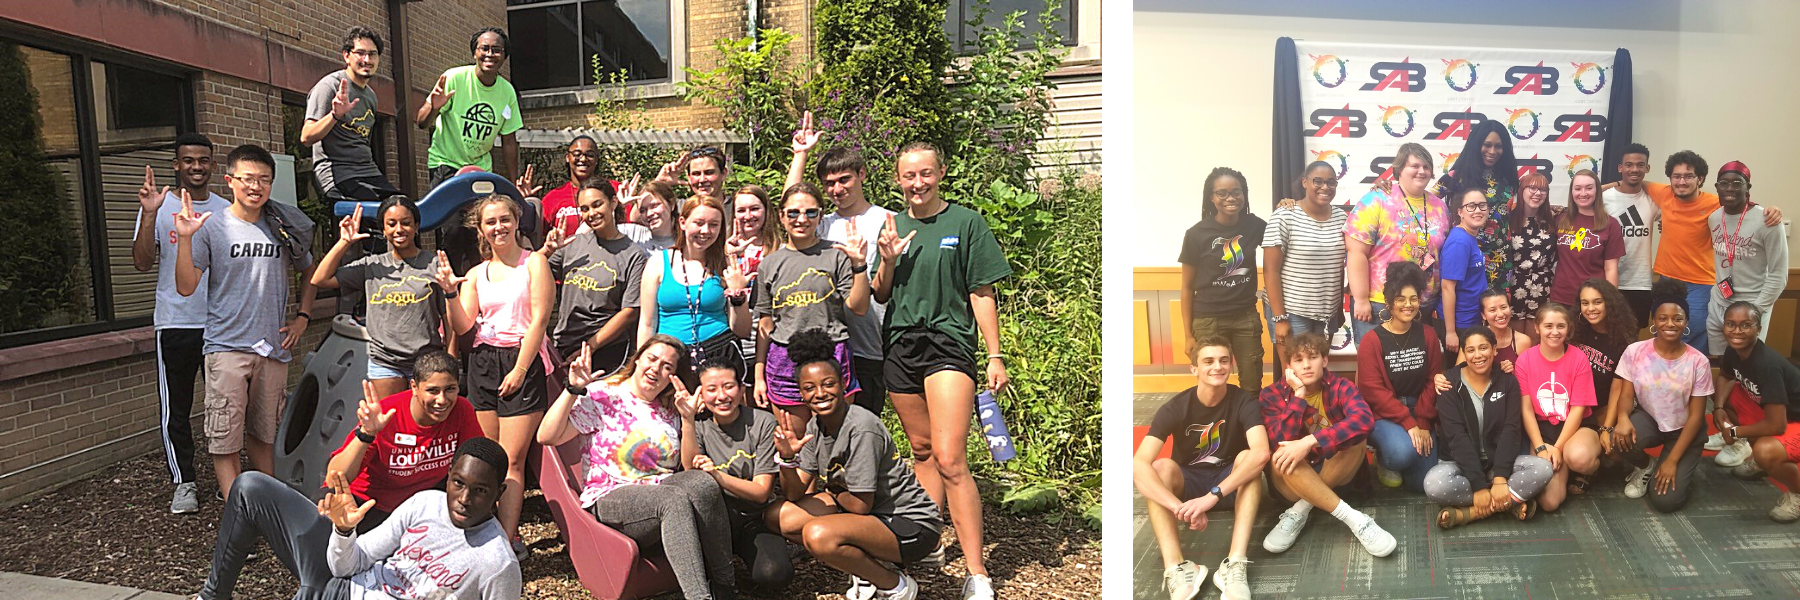 honors living-learning community members outside on campus smiling. Members are also pictured at an event hosted by the Student Activities Board